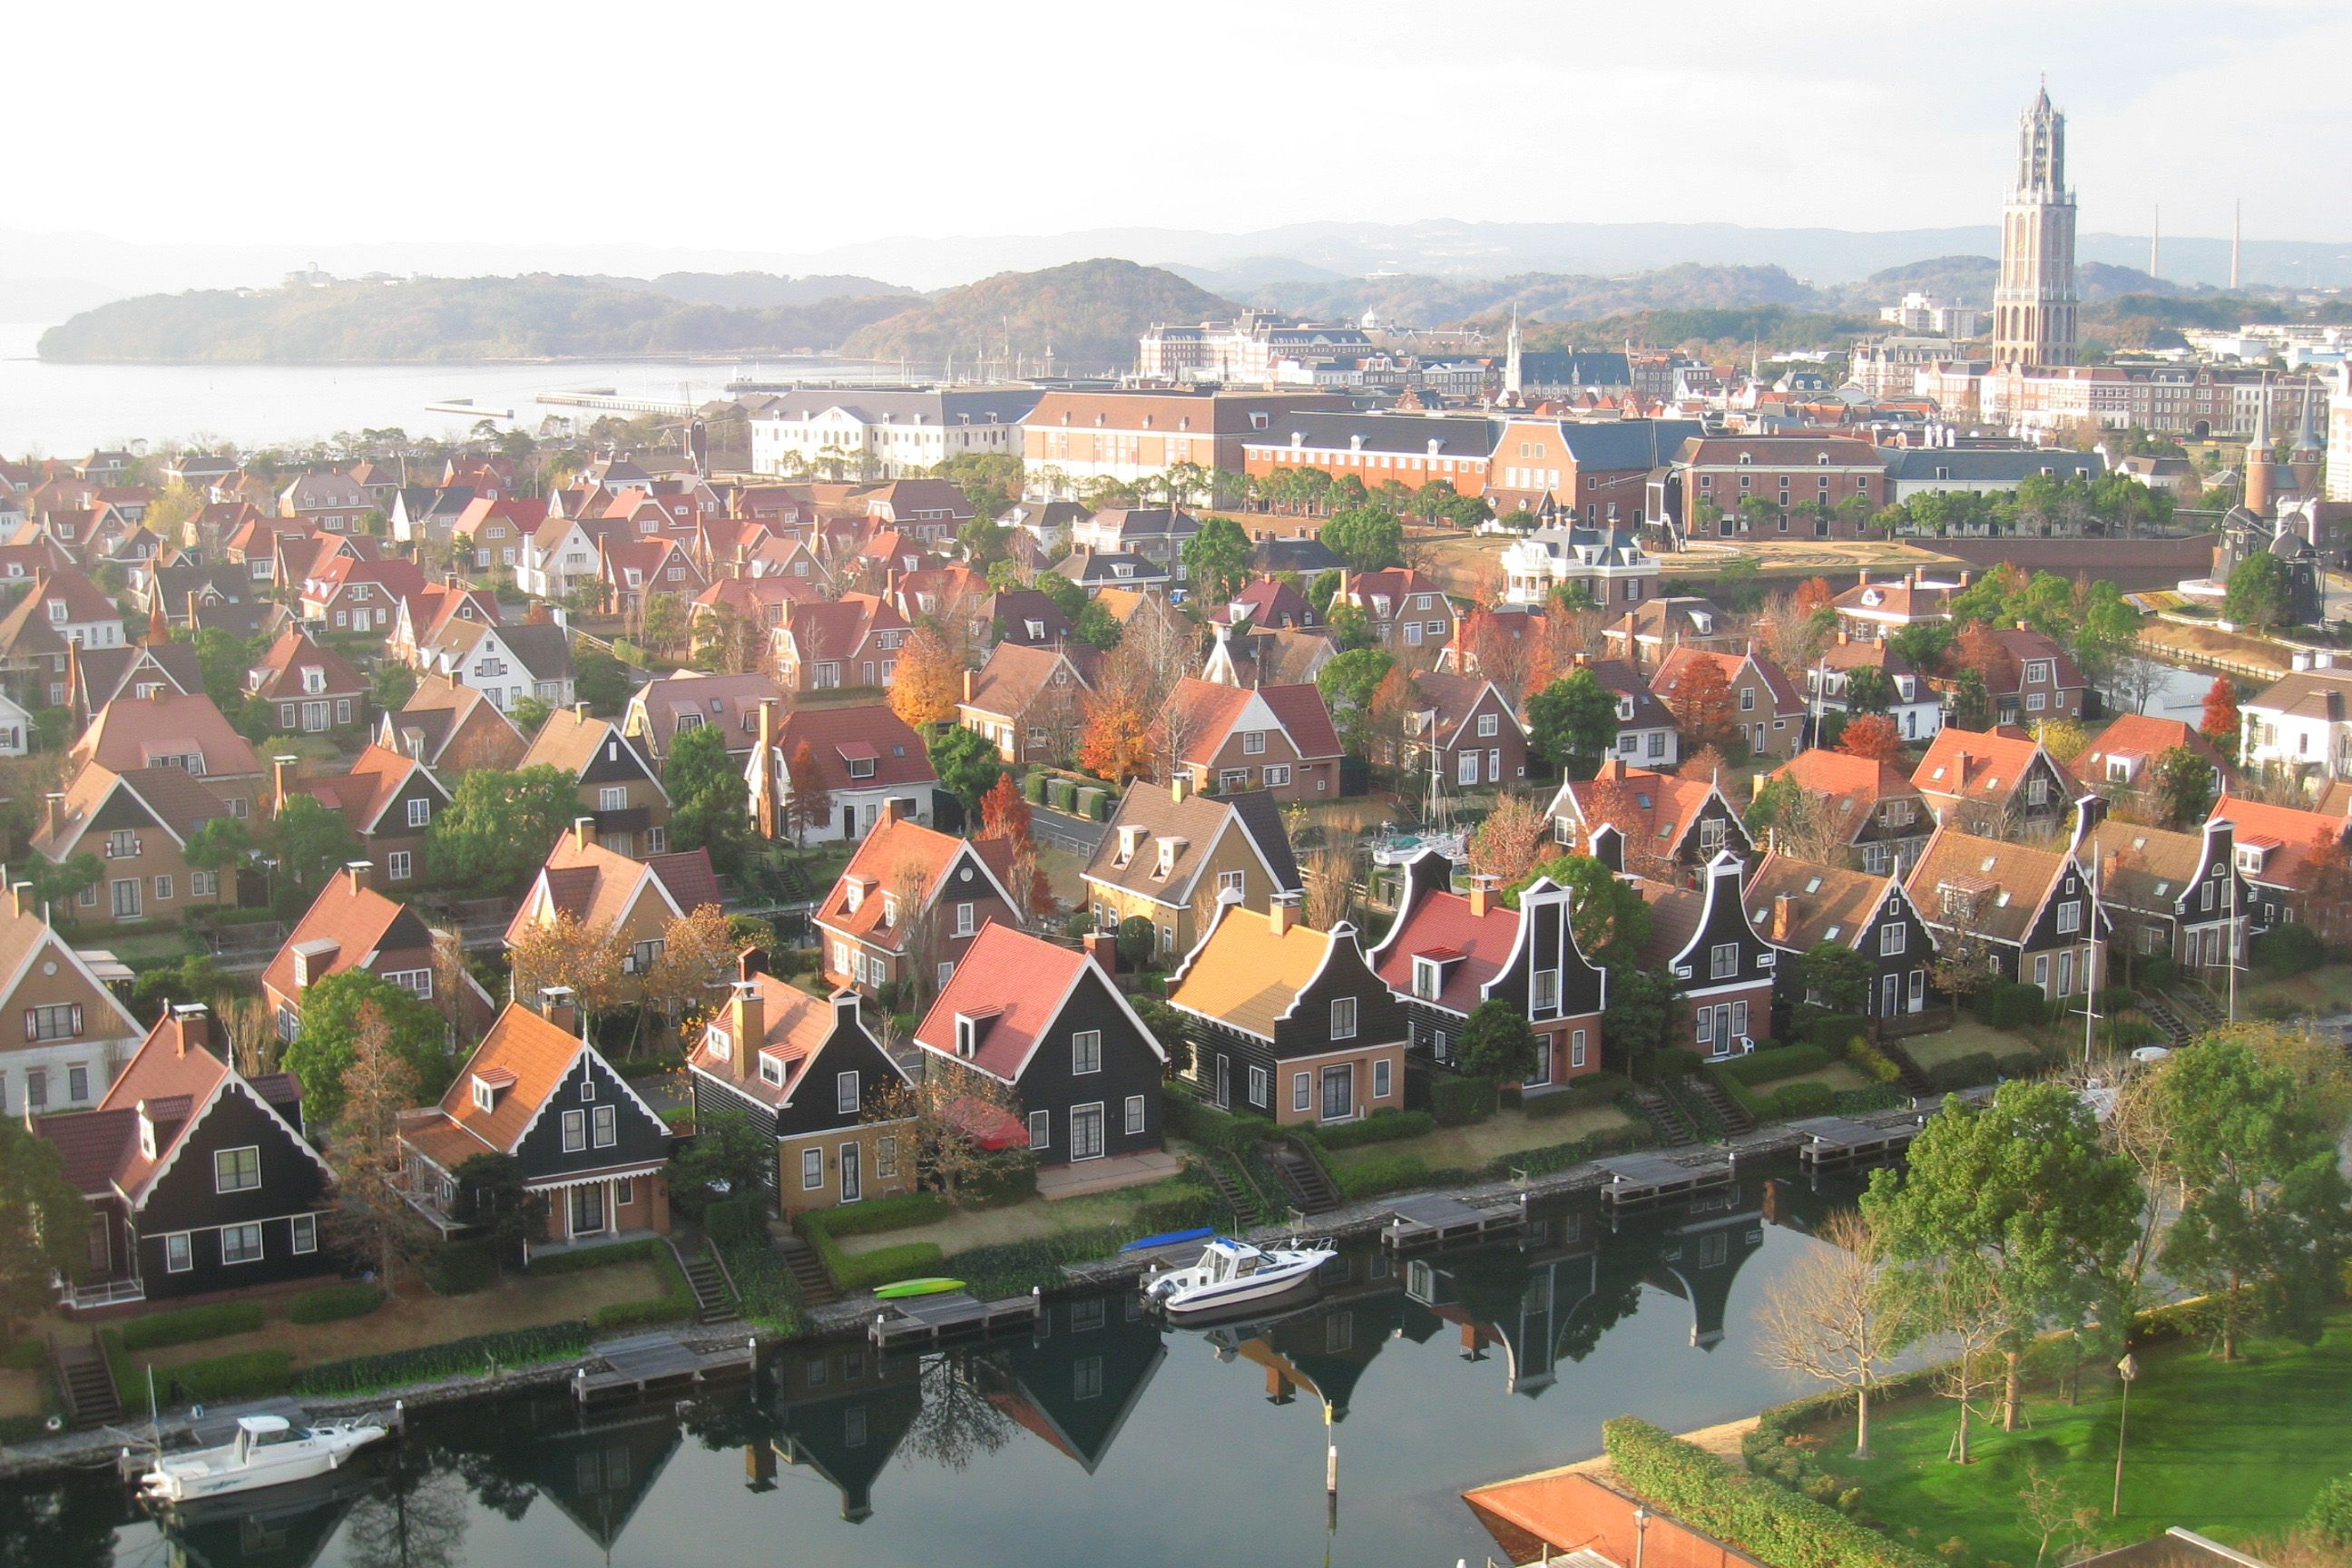 Huis Ten Bosch Sasebo Japan A Theme Park That Contains Life Size Structures And Recreates The Netherlands 旅 長崎 ハウステンボス 長崎